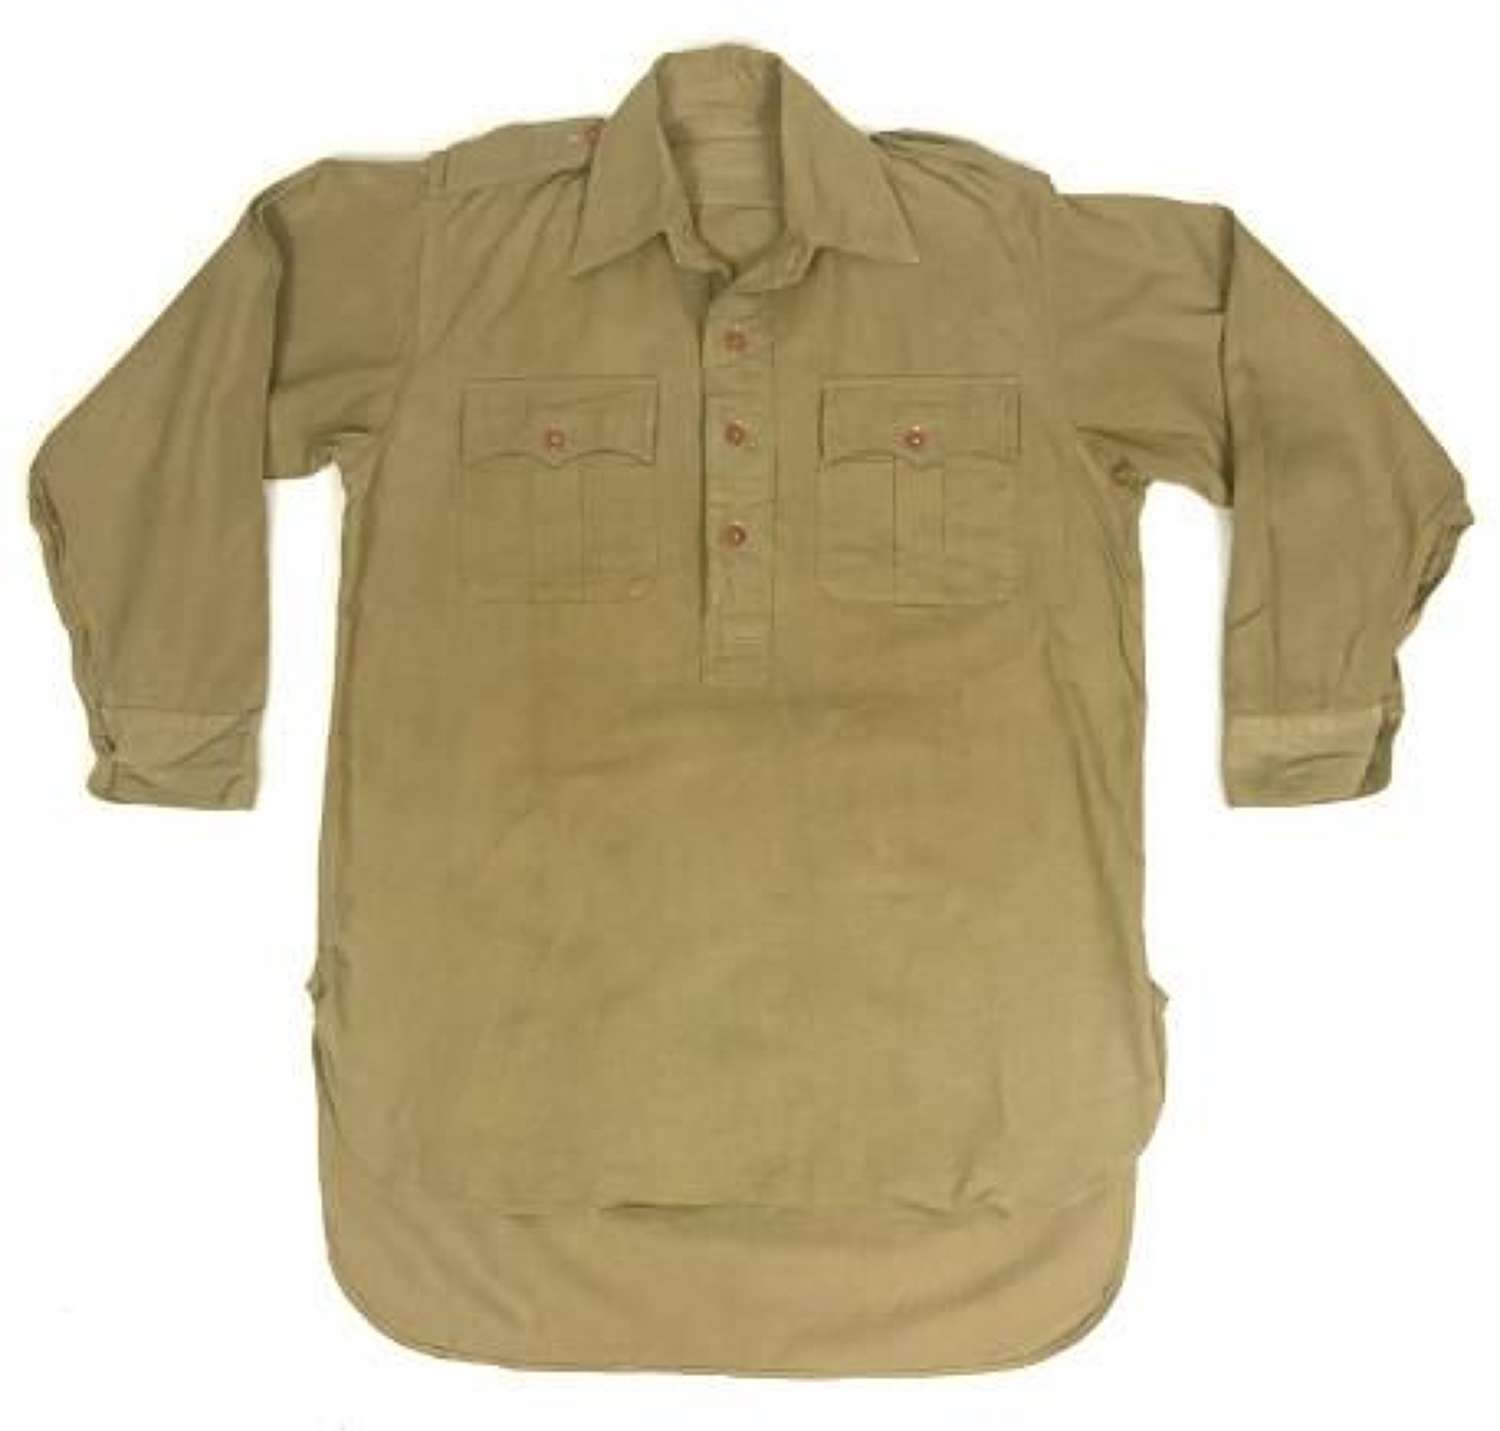 Original WW2 British Army Officers Khaki Drill Shirt